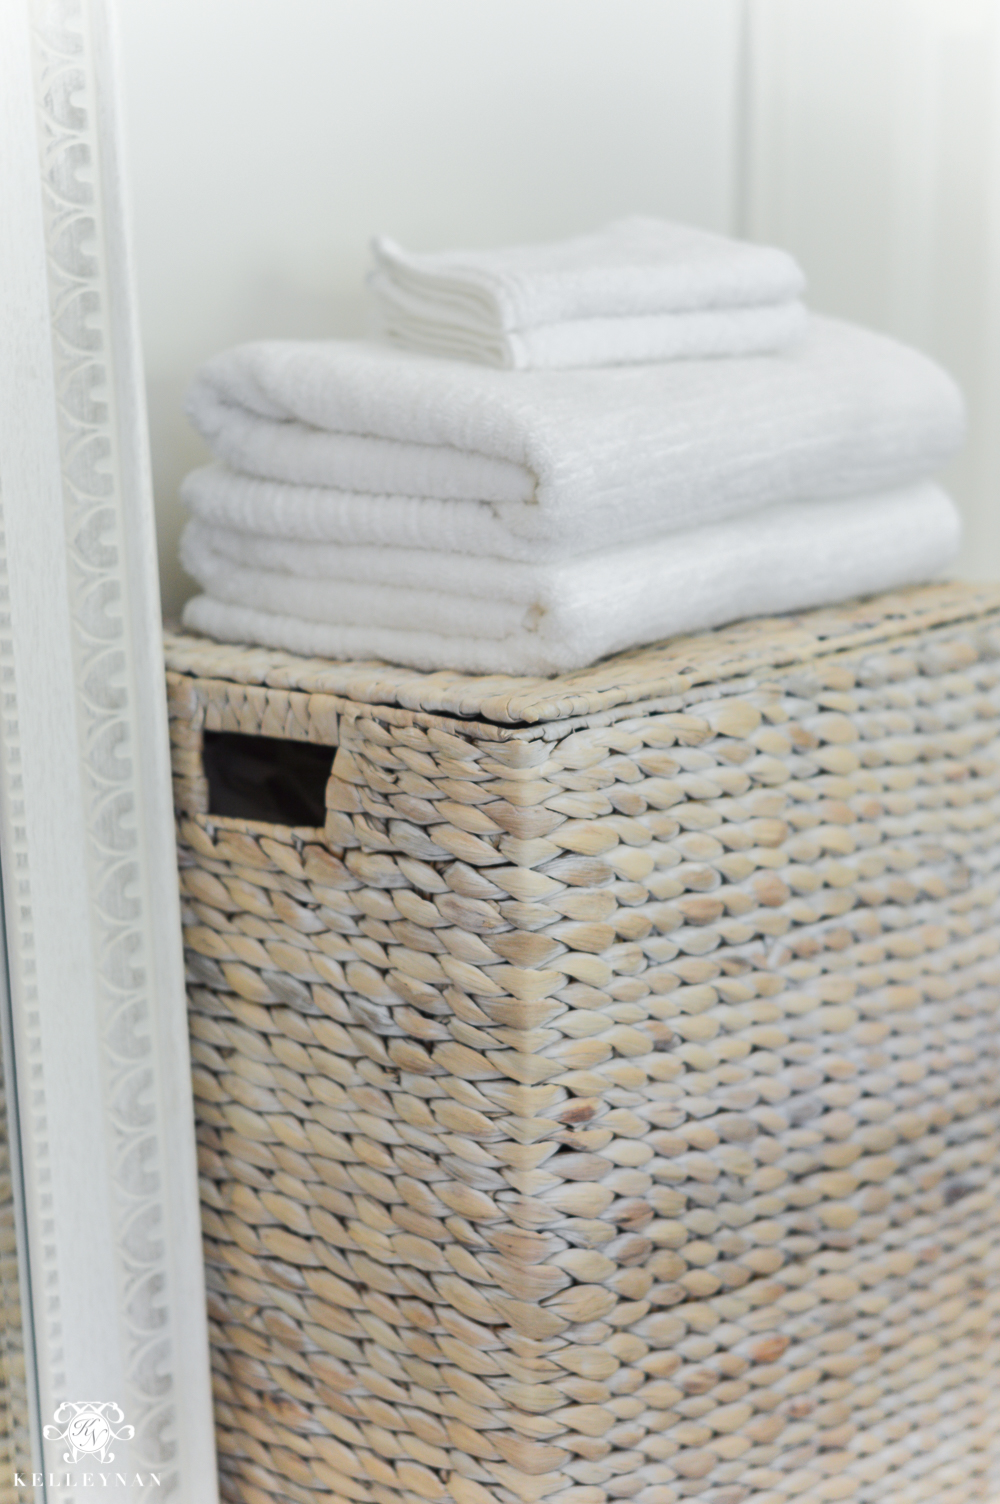 Guest Room Essentials- What every guest bedroom should have- woven hamper with white towels